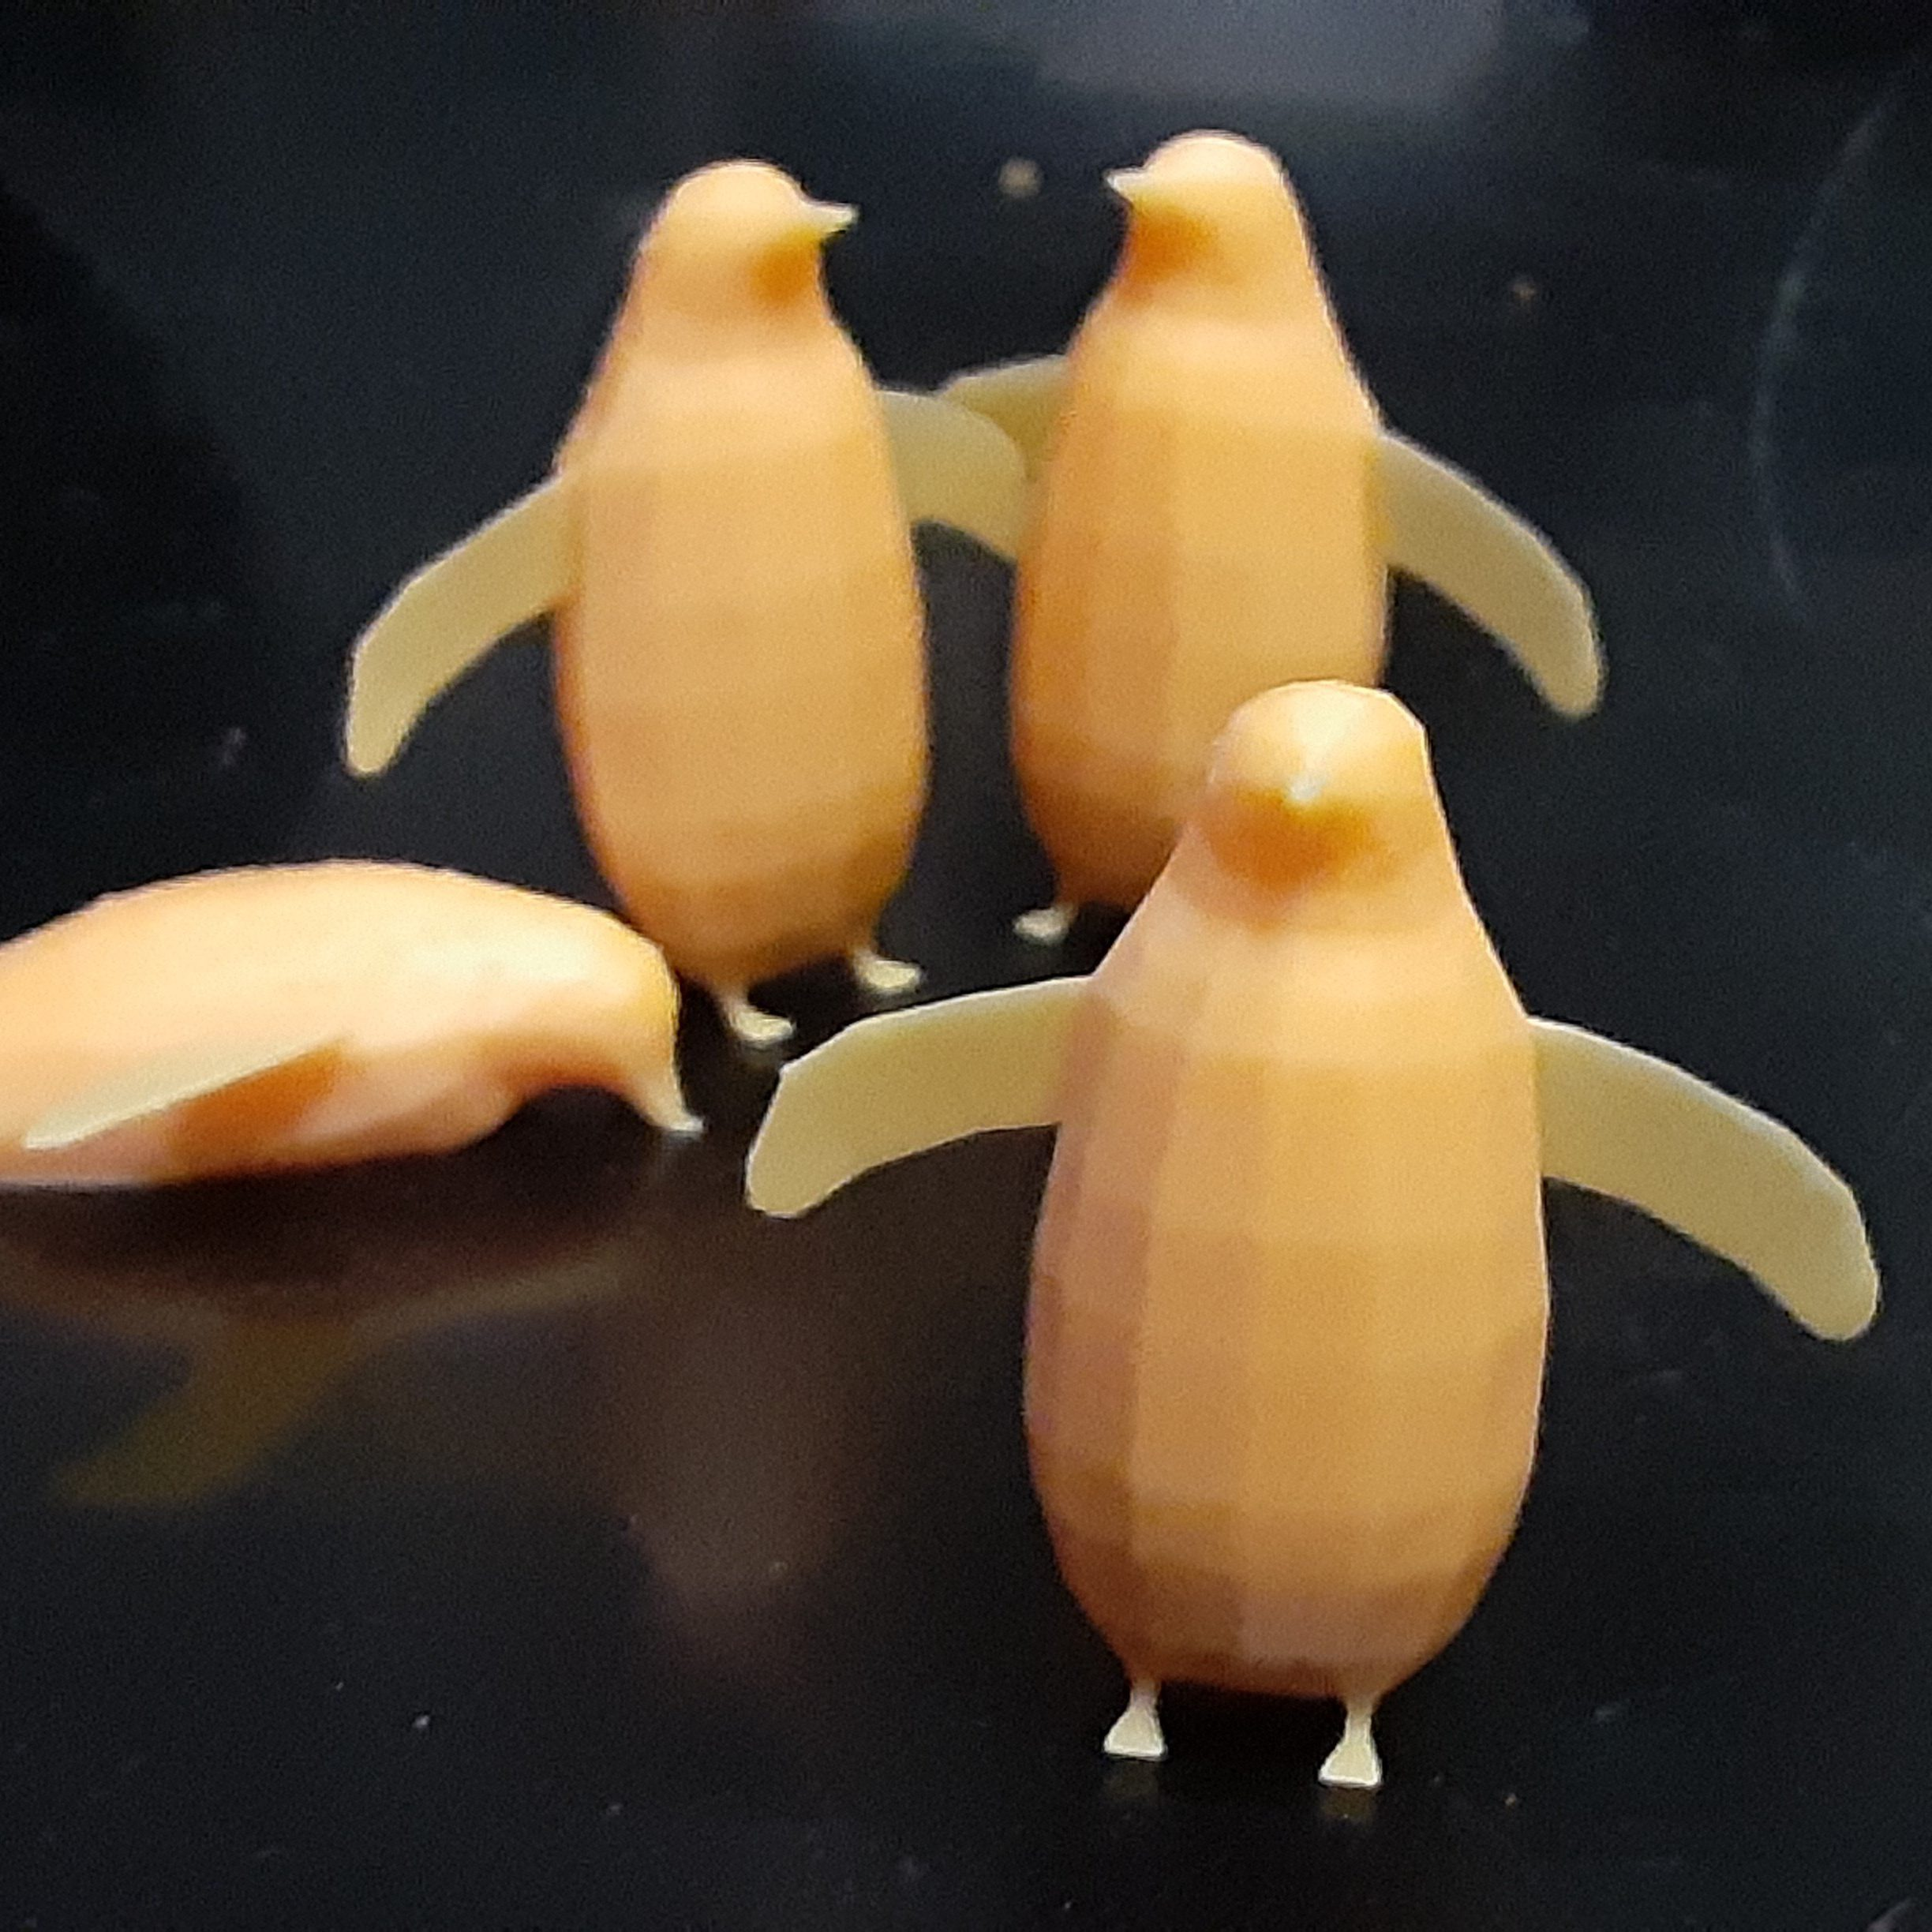 4 penguins 3D printed in orange resin. 3 are standing upright with wings spread out, one is on its belly.